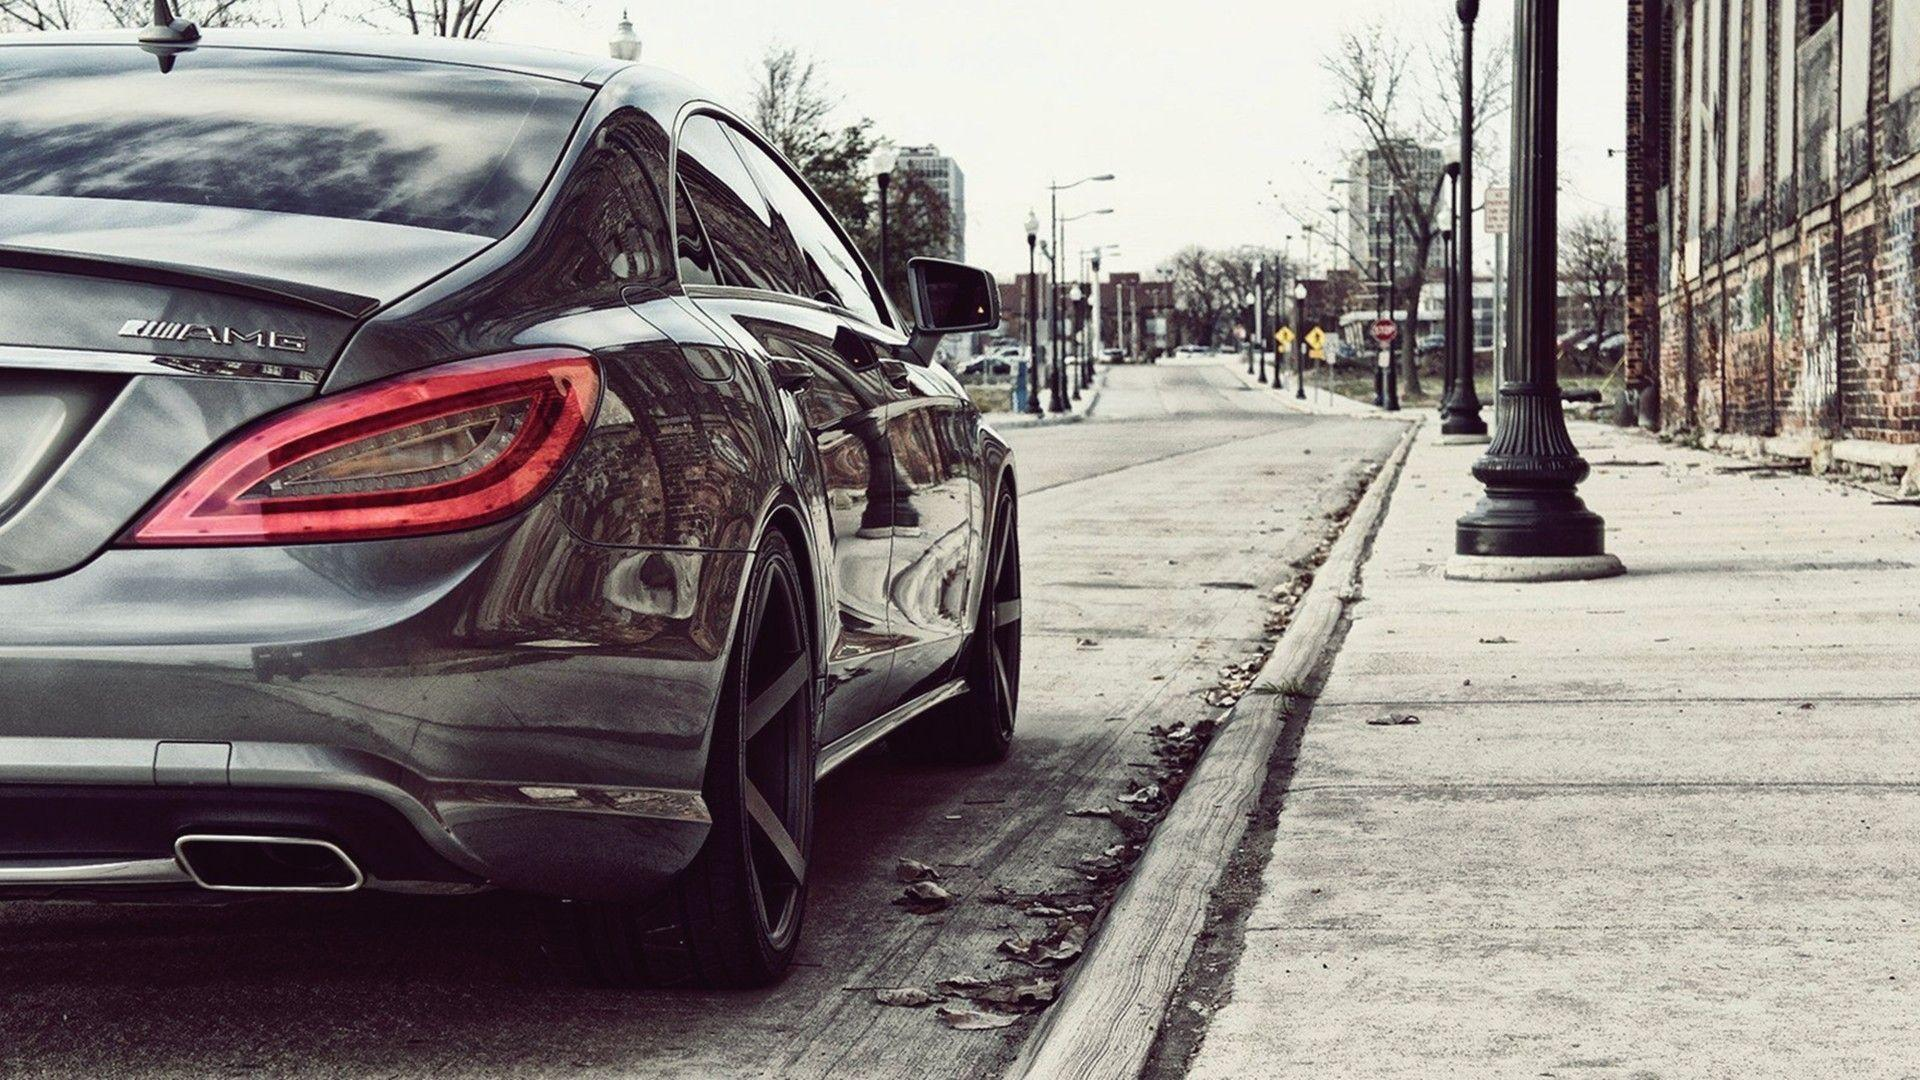 Mercedes Amg Wallpapers Wallpaper Cave